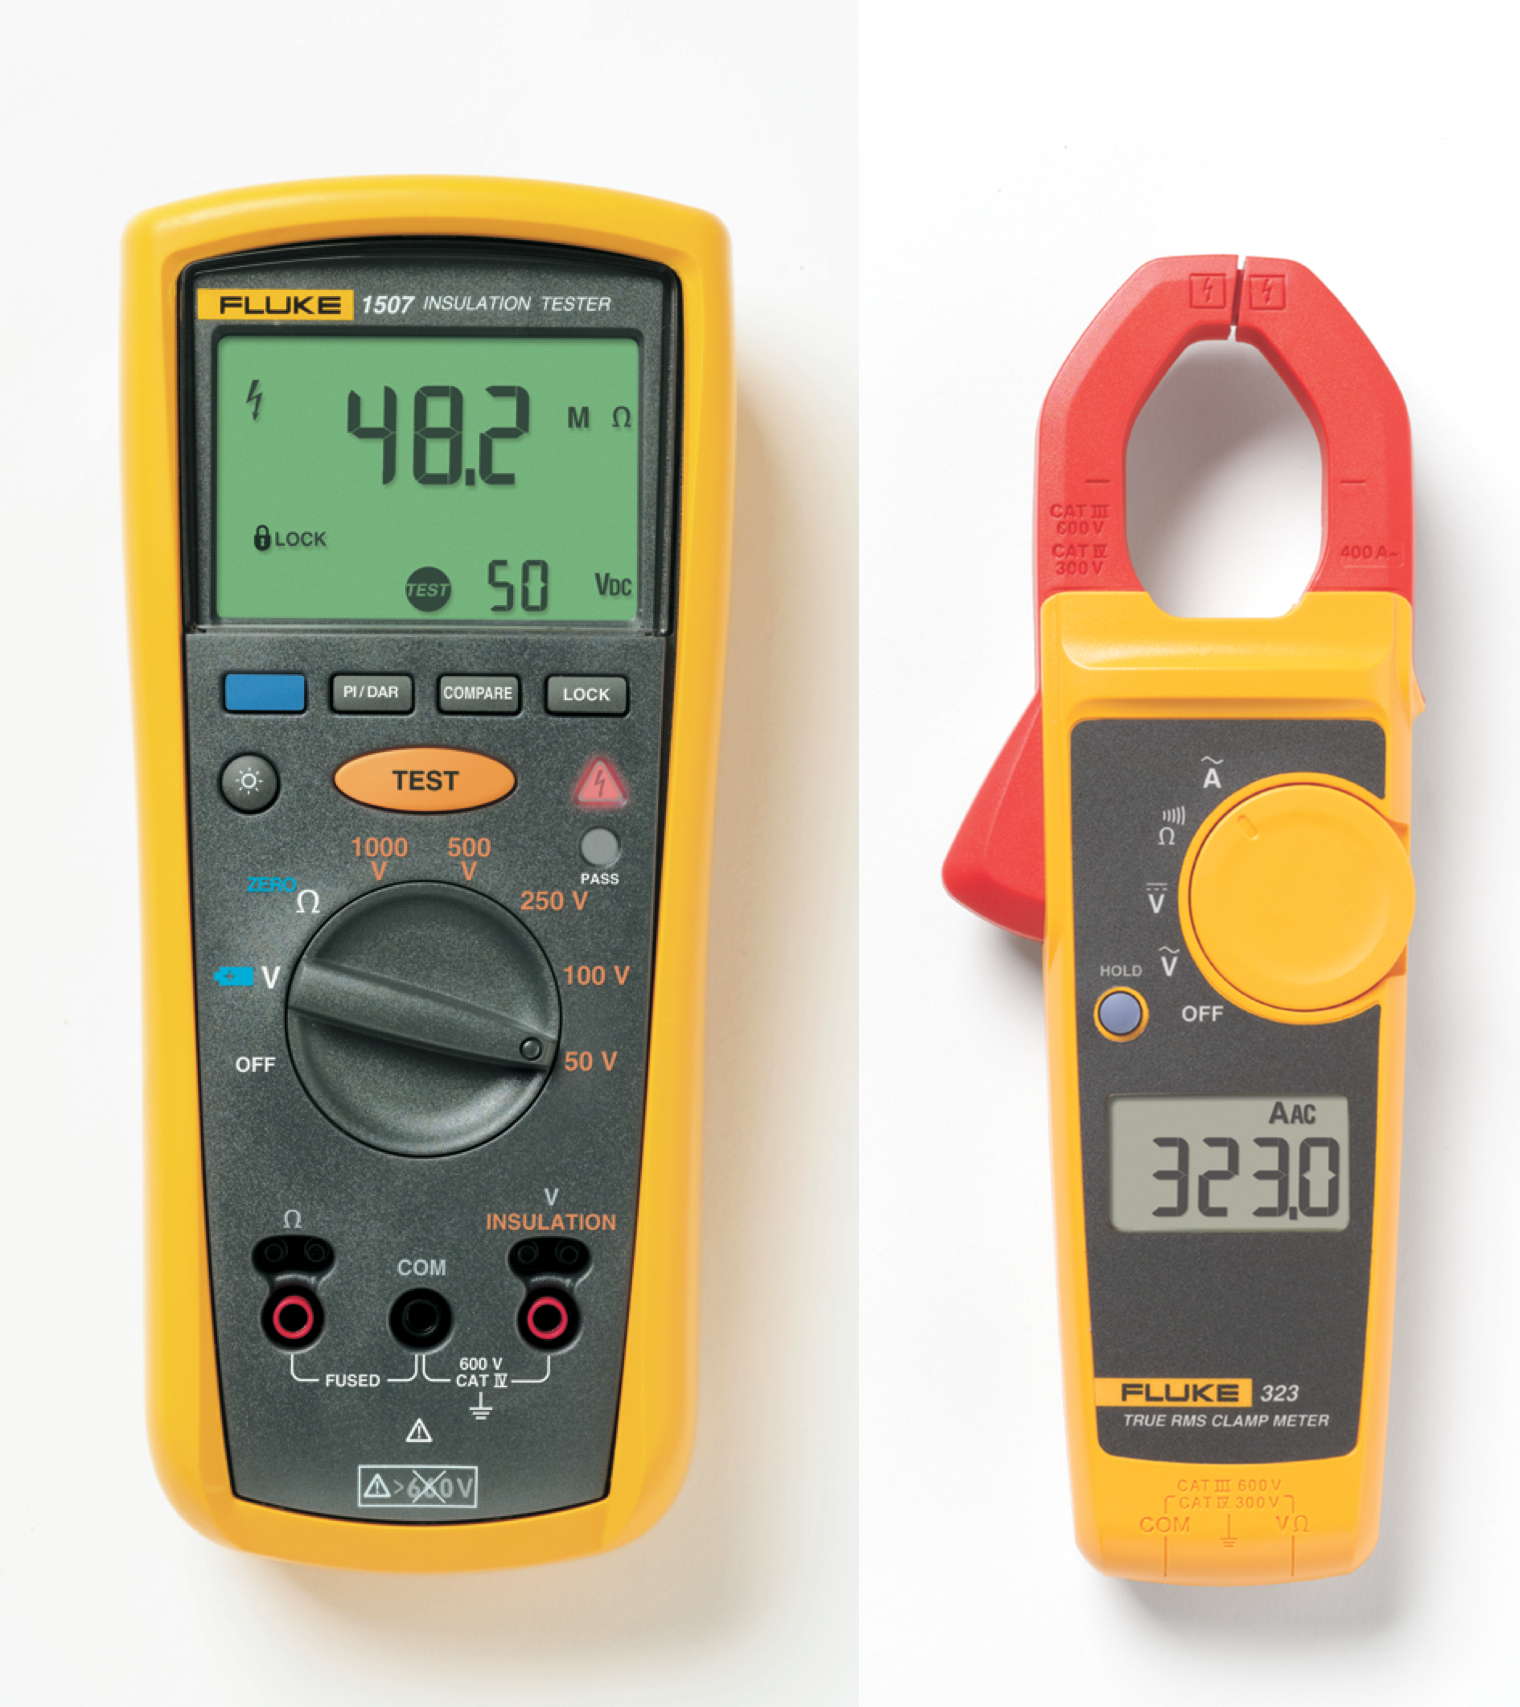 fluke-1507-insulation-tester-plus-free-fluke-323-clamp-meter